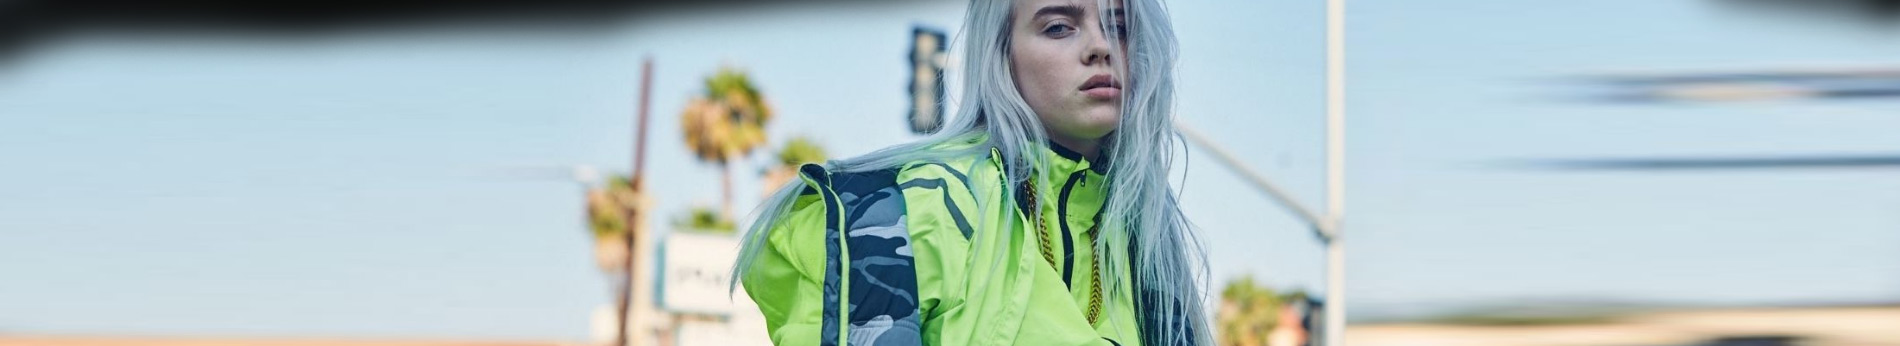 Billie Eilish New York NY June 19, 2019 Tickets